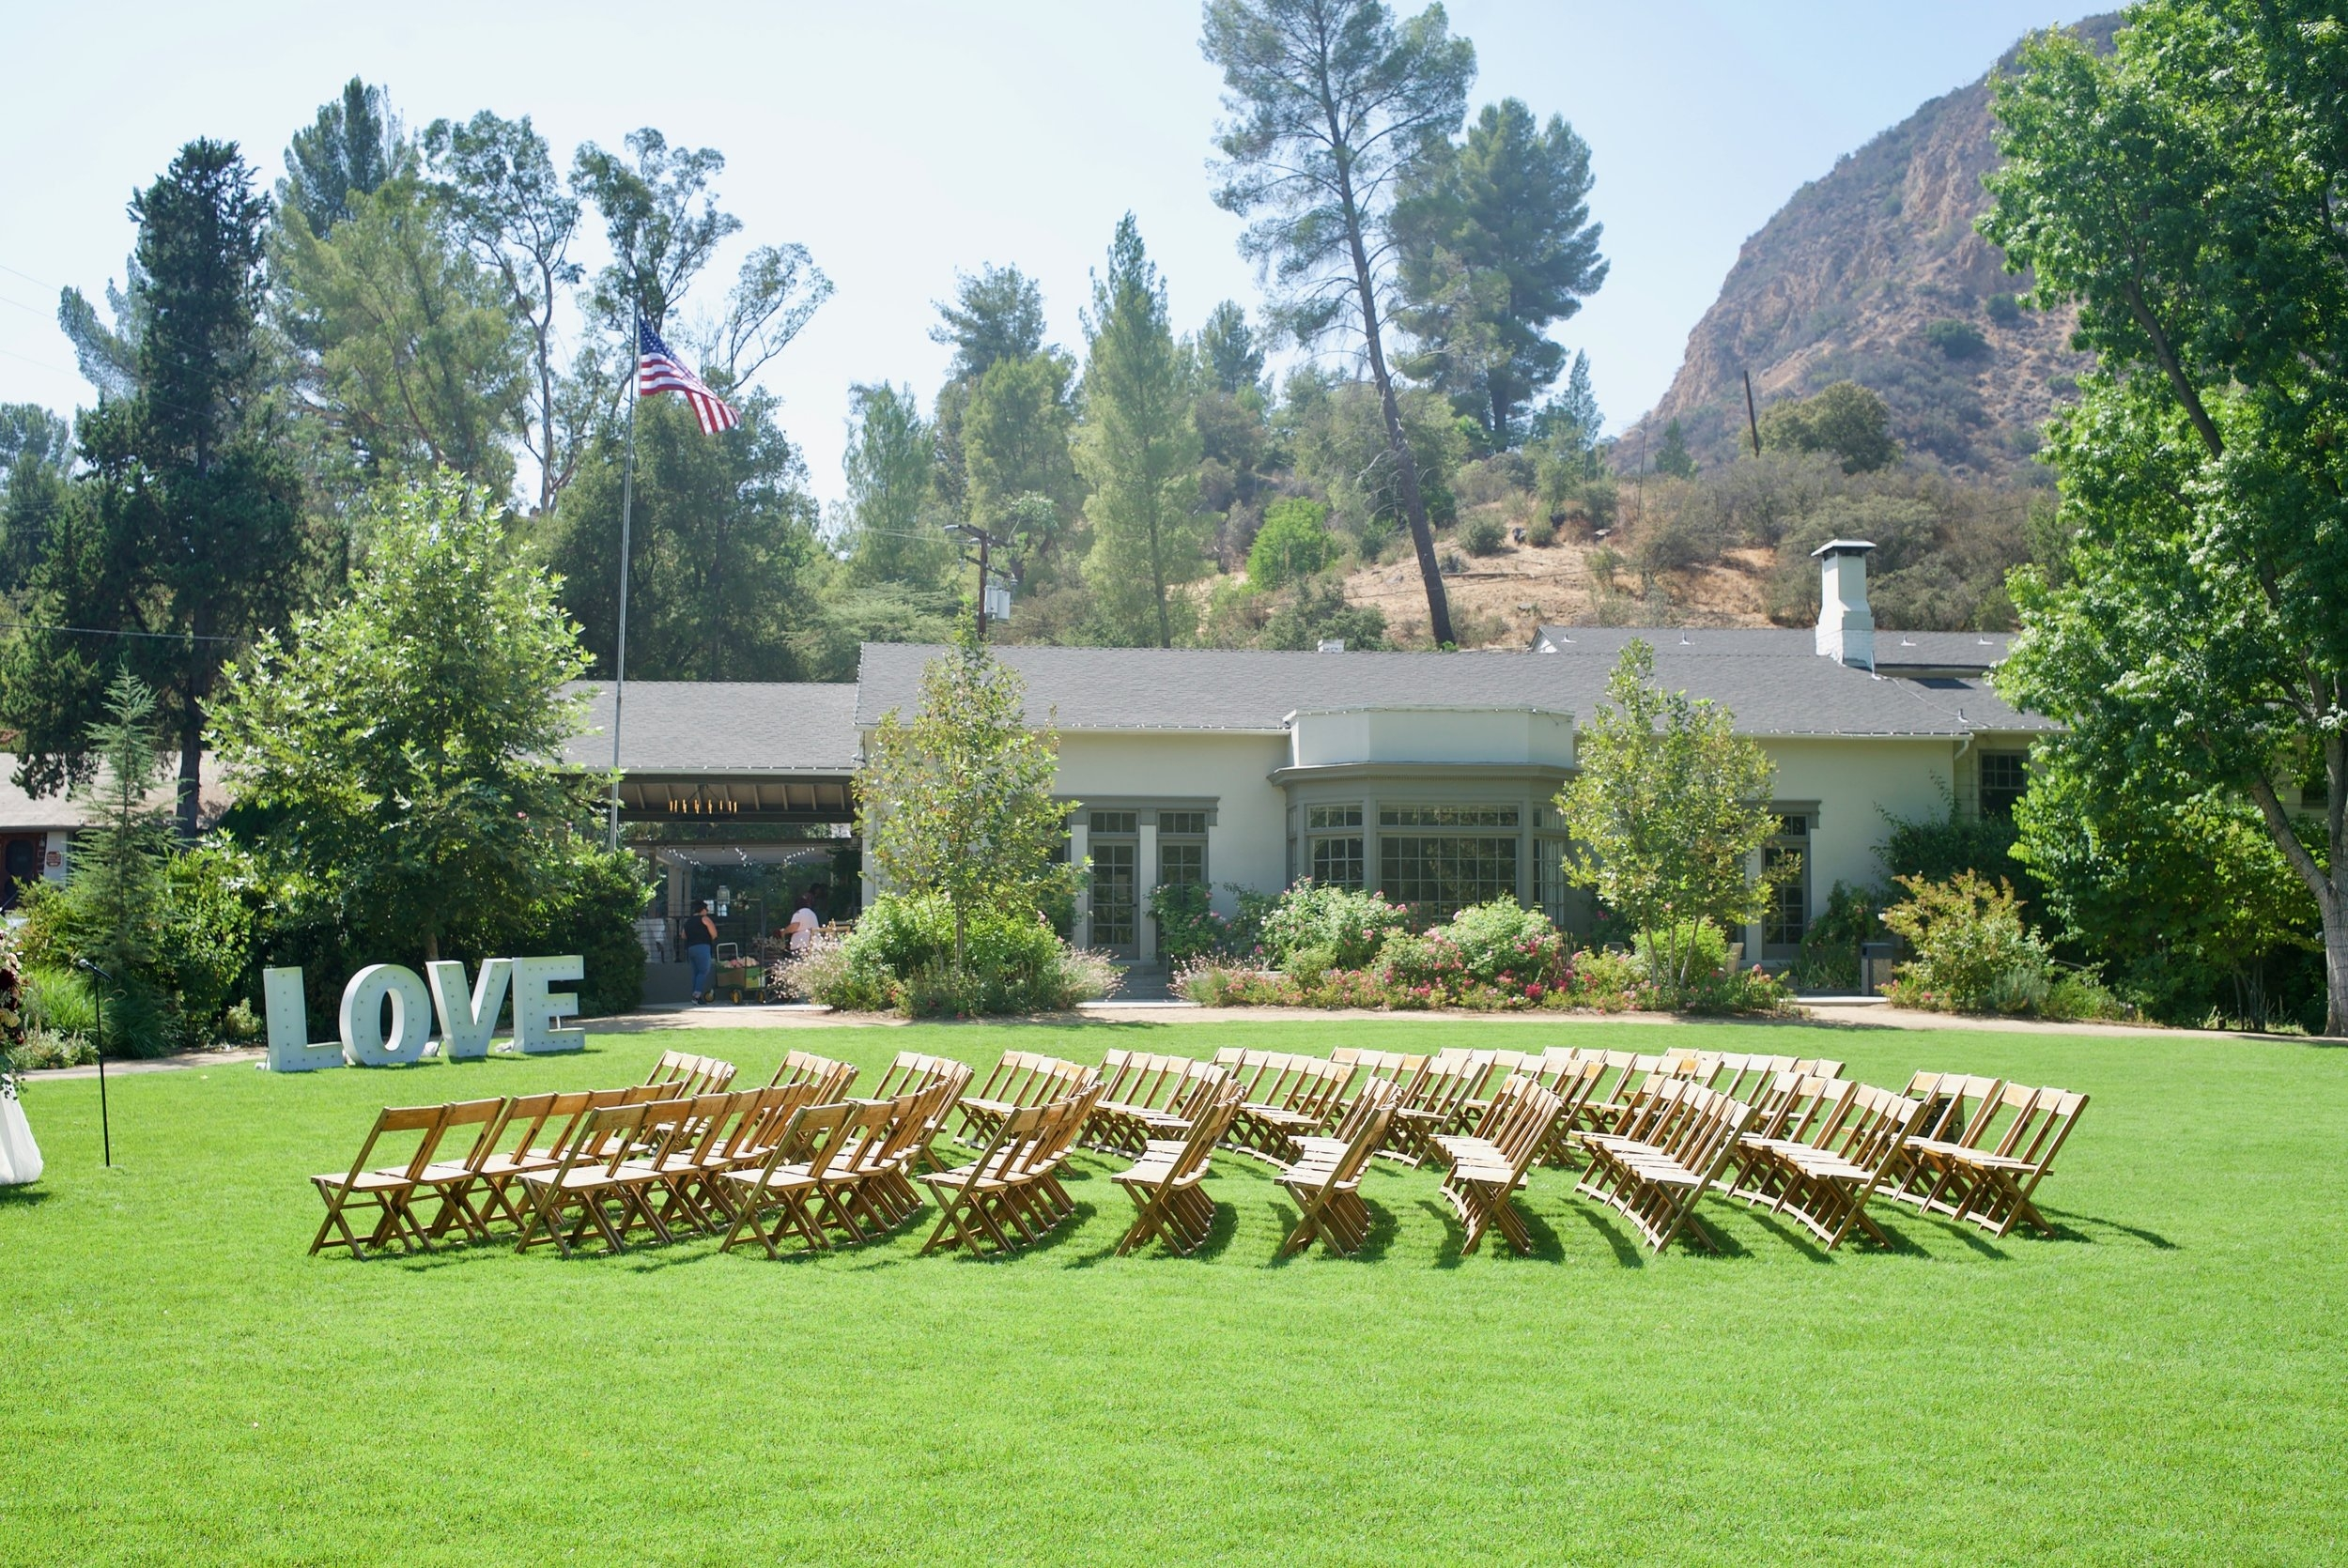 Lawn ceremony LOVE sign.jpg